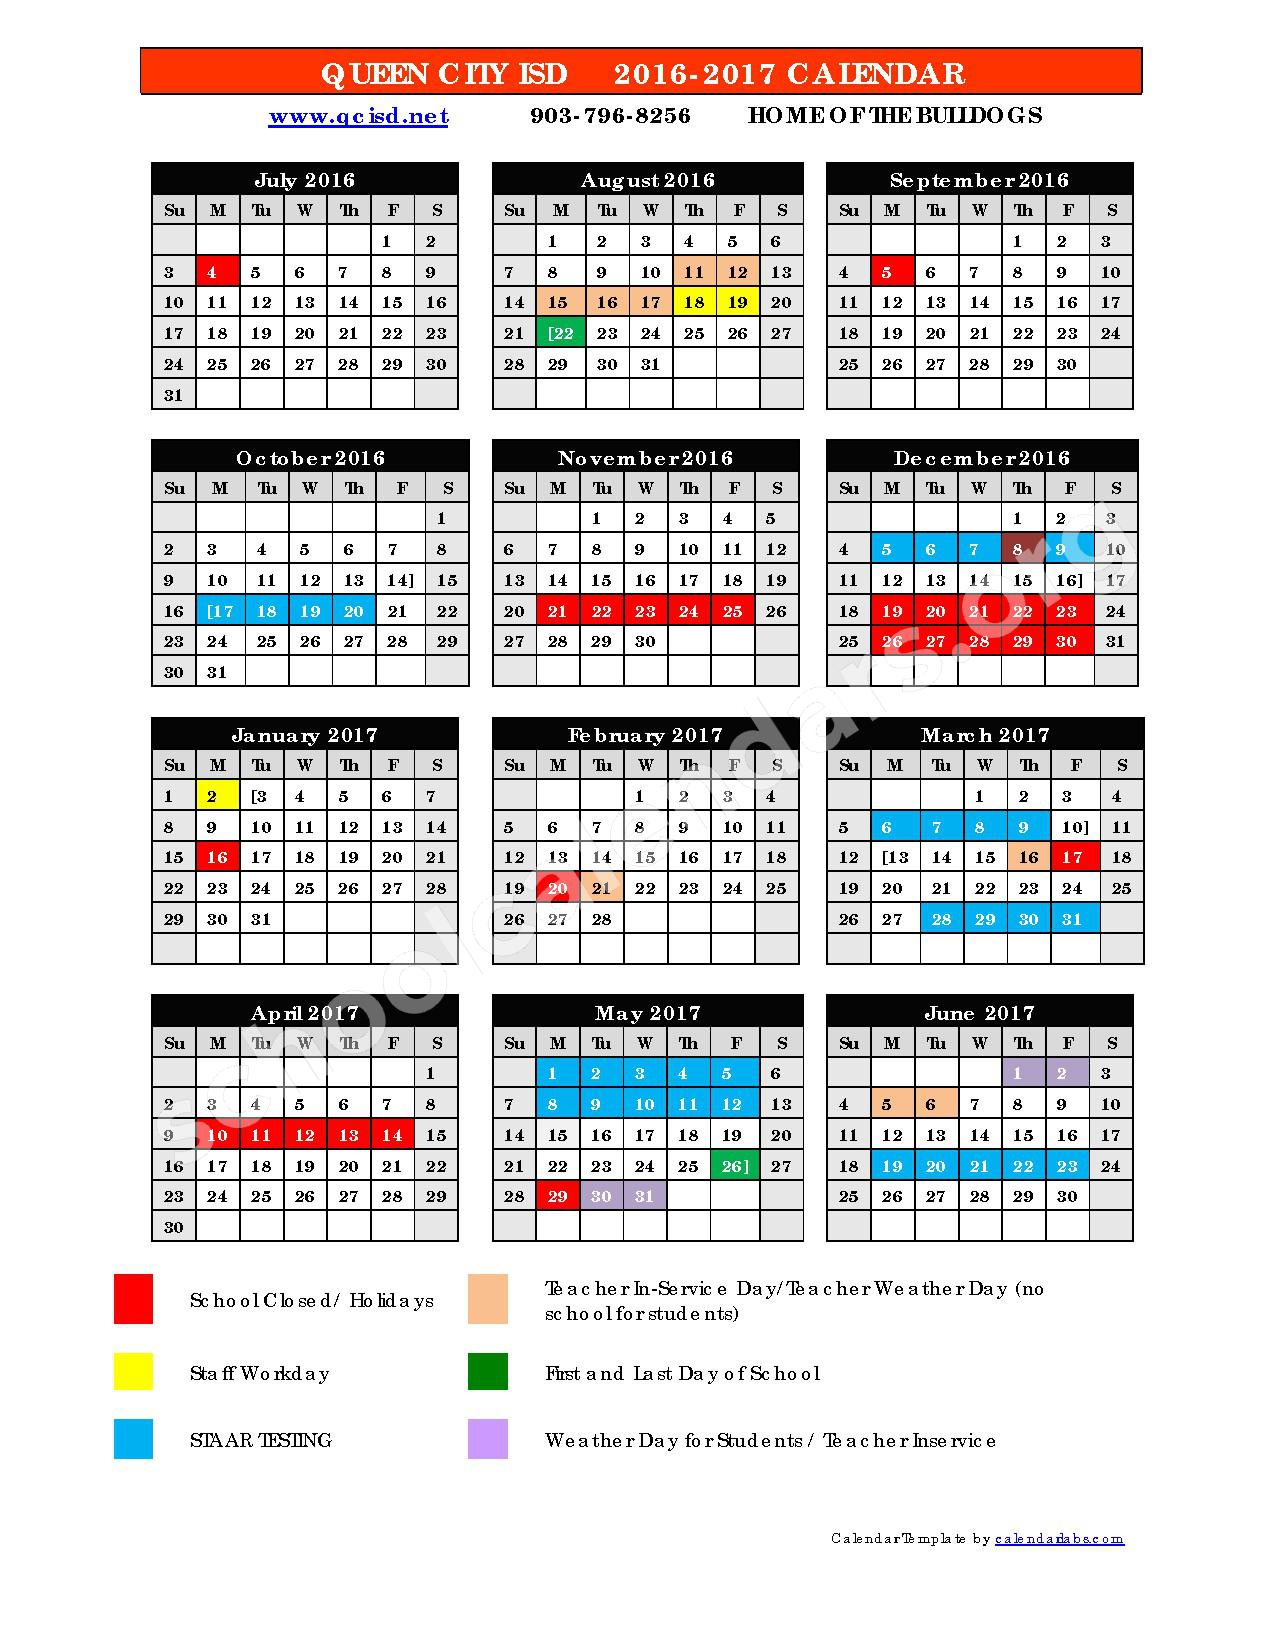 2016 - 2017 District Calendar – Queen City Independent School District – page 1